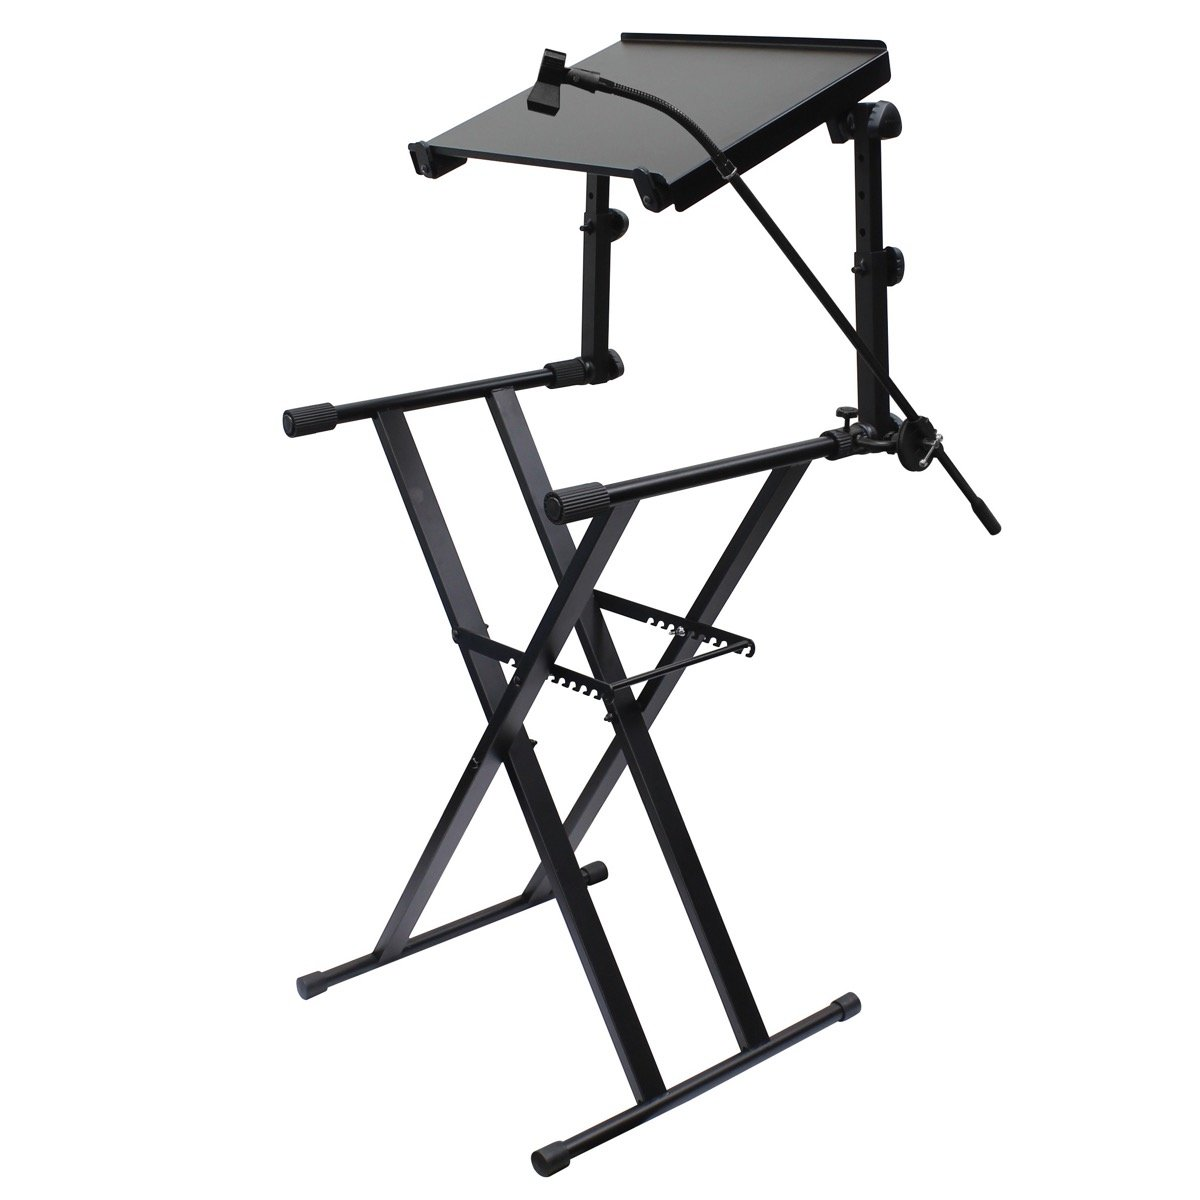 1200x1200 Odyssey Ltbxs2mtcp 2 Tier Dj X Stand Combo Pack, Black